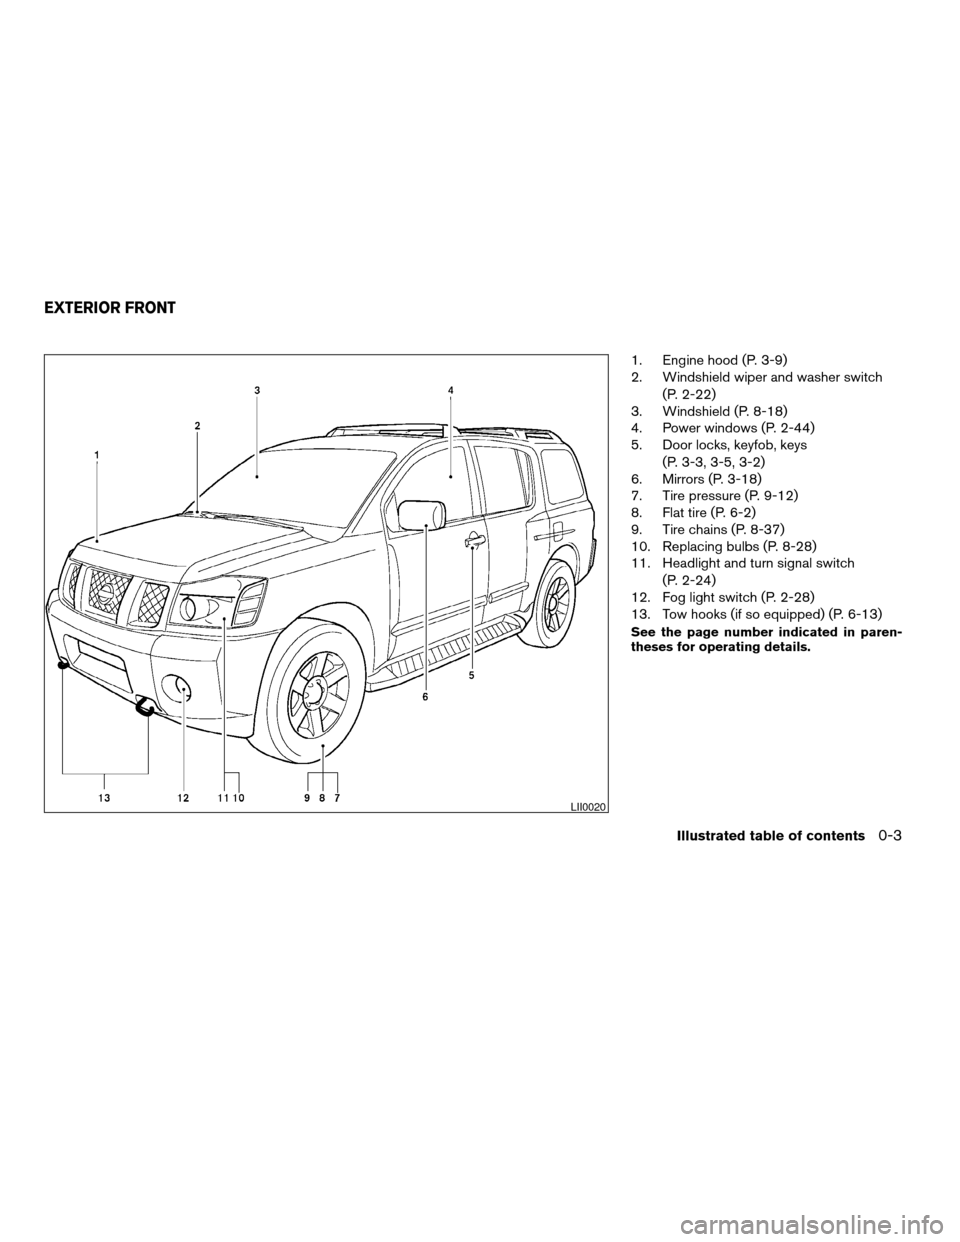 NISSAN ARMADA 2007 1.G Owners Manual